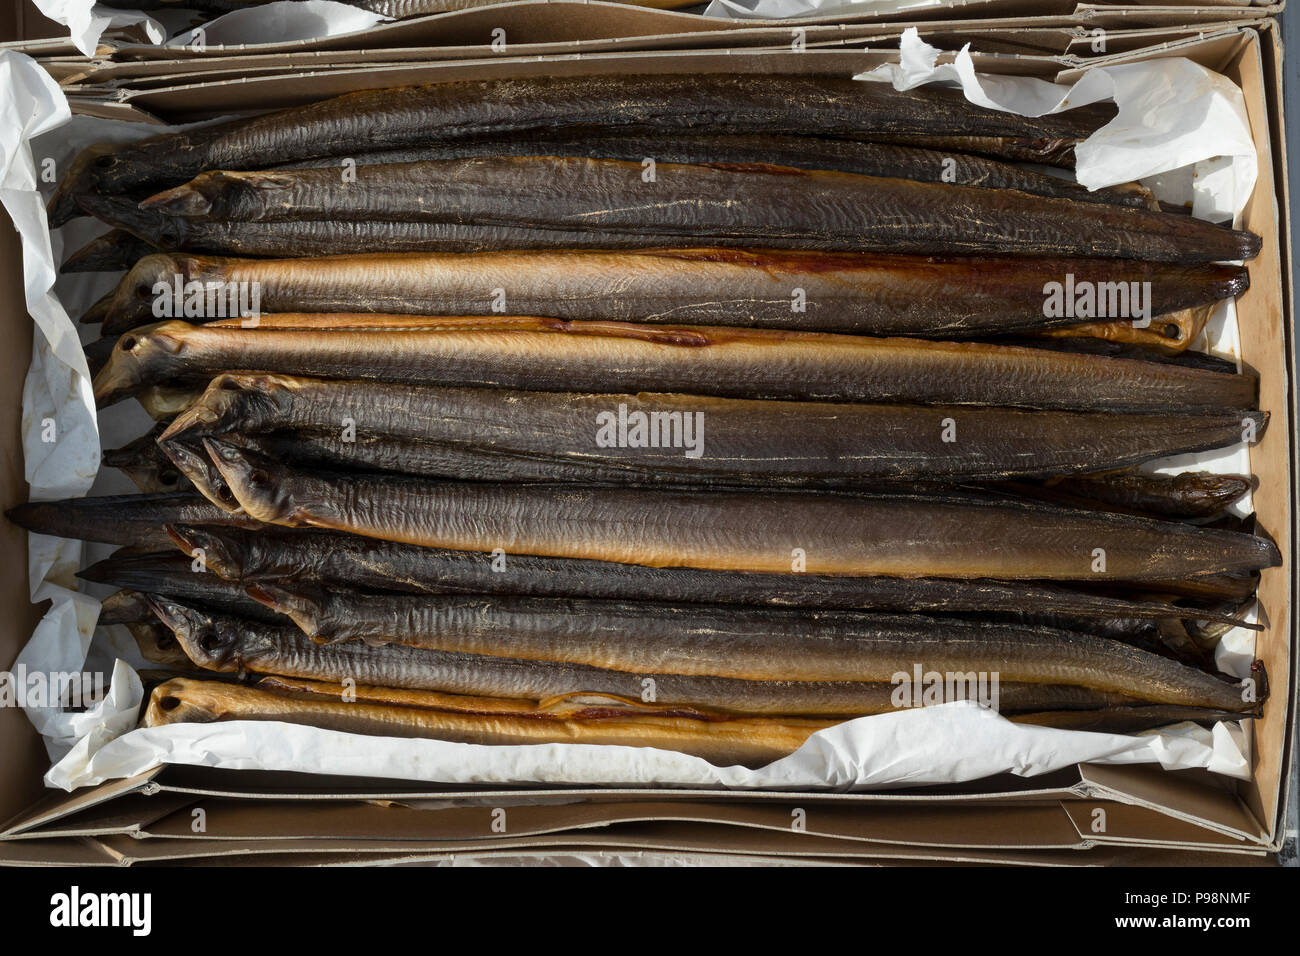 Fresh smoked eels in a cardboard box for sale - Stock Image